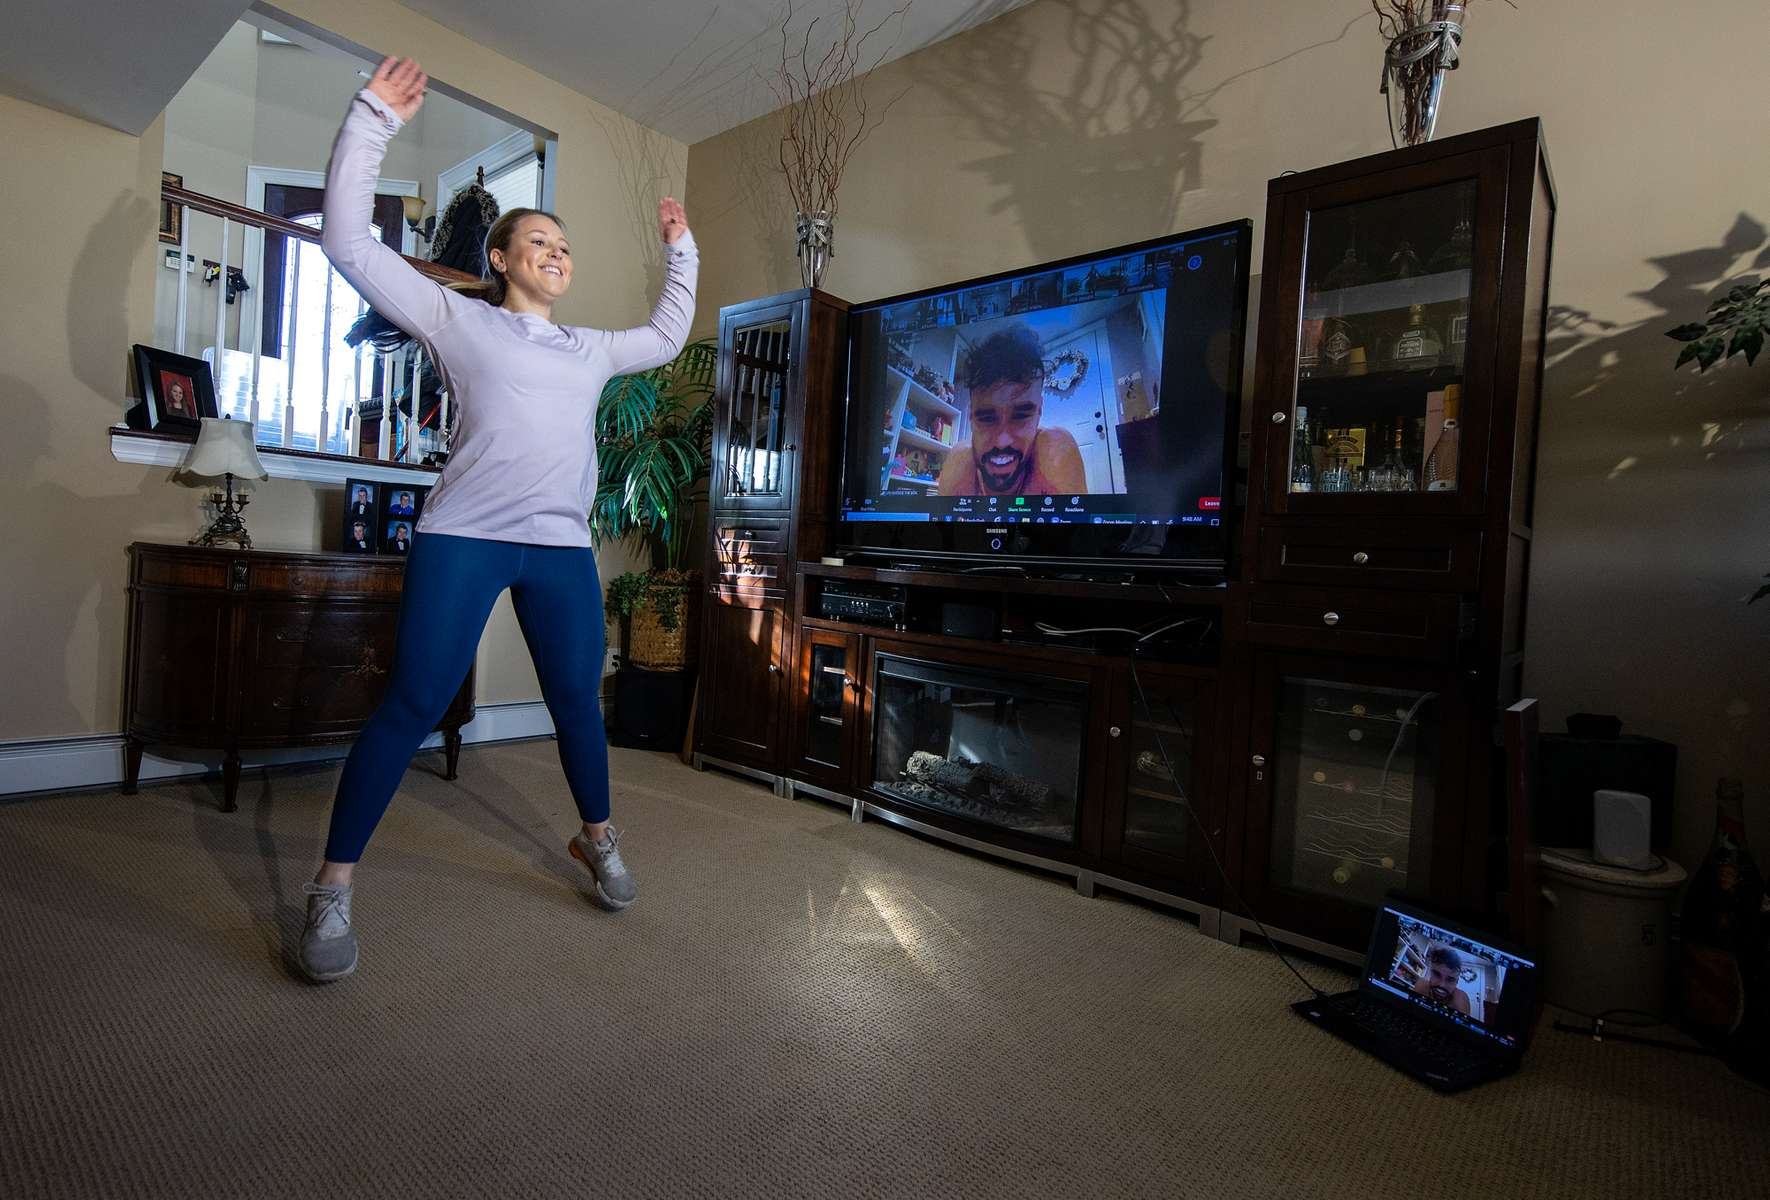 Alexa Hoovis exercises in her home with her virtual Fitness Trainer Dennis Guerrero on November 20th, 2020 in Oceanside, New York.  In March of 2014, Dennis Guerrero and his business partner opened a gym on Long Island. The pair shared a passion for fitness, a dream of creating a local community of like-minded people and a willingness to take a risk. Over the next six years, hundreds of members experienced and embraced a unique environment that fostered a palpable energy, helping athletes of all ages and abilities reach their potential.  The gym became a place to share achievements, work through losses and overcome illness. But like so many other businesses, it seemingly had no way of overcoming the financial impact and ongoing uncertainty of a global pandemic. With the arrival of Covid-19, the gym shut its doors back in March, with no idea when it would reopen. The owners, though, were far from done. They lent out every piece of equipment they owned to the gym's members, continued to pay their staff and worked to set up outdoor classes in hopes of keeping their membership active and healthy. As the shutdown stretched on, it became clear that the physical gym was closed for good.  They have since reinvented themselves and are now called Life Outside the Box.  Their business model has changed drastically, and all their workouts have gone virtual.  The workouts are conducted by a small group of fitness trainers led by Guerrero.  The members pay a monthly fee and can take live Zoom fitness classes.  They are coached by the virtual trainers in real time.  More and more people have reconstructed their garages, spare rooms, backyards, and basements into home gyms since the COVID-19 pandemic hit the United States.